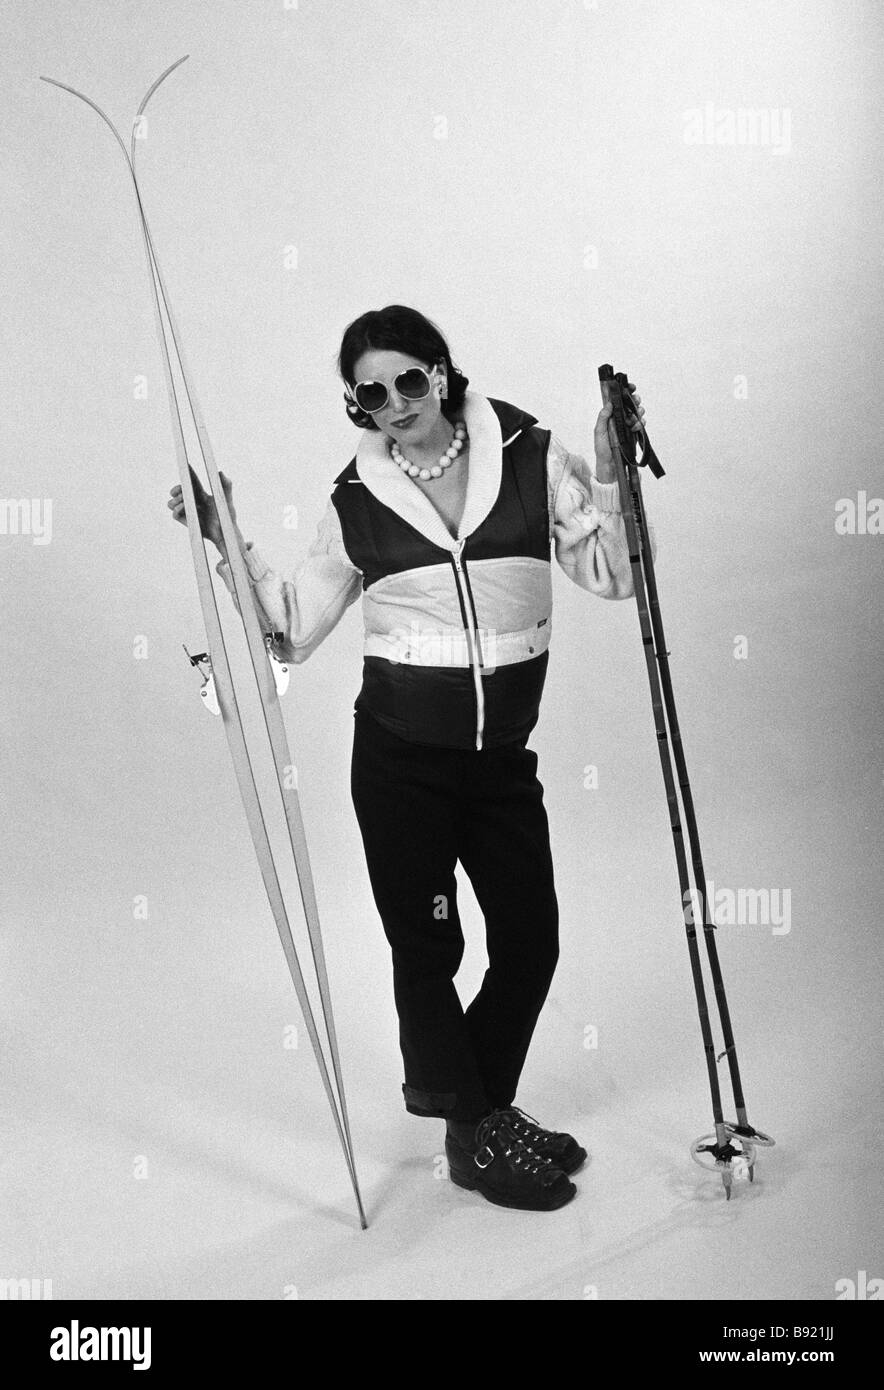 A woman with skis and ski poles Sweden. - Stock Image